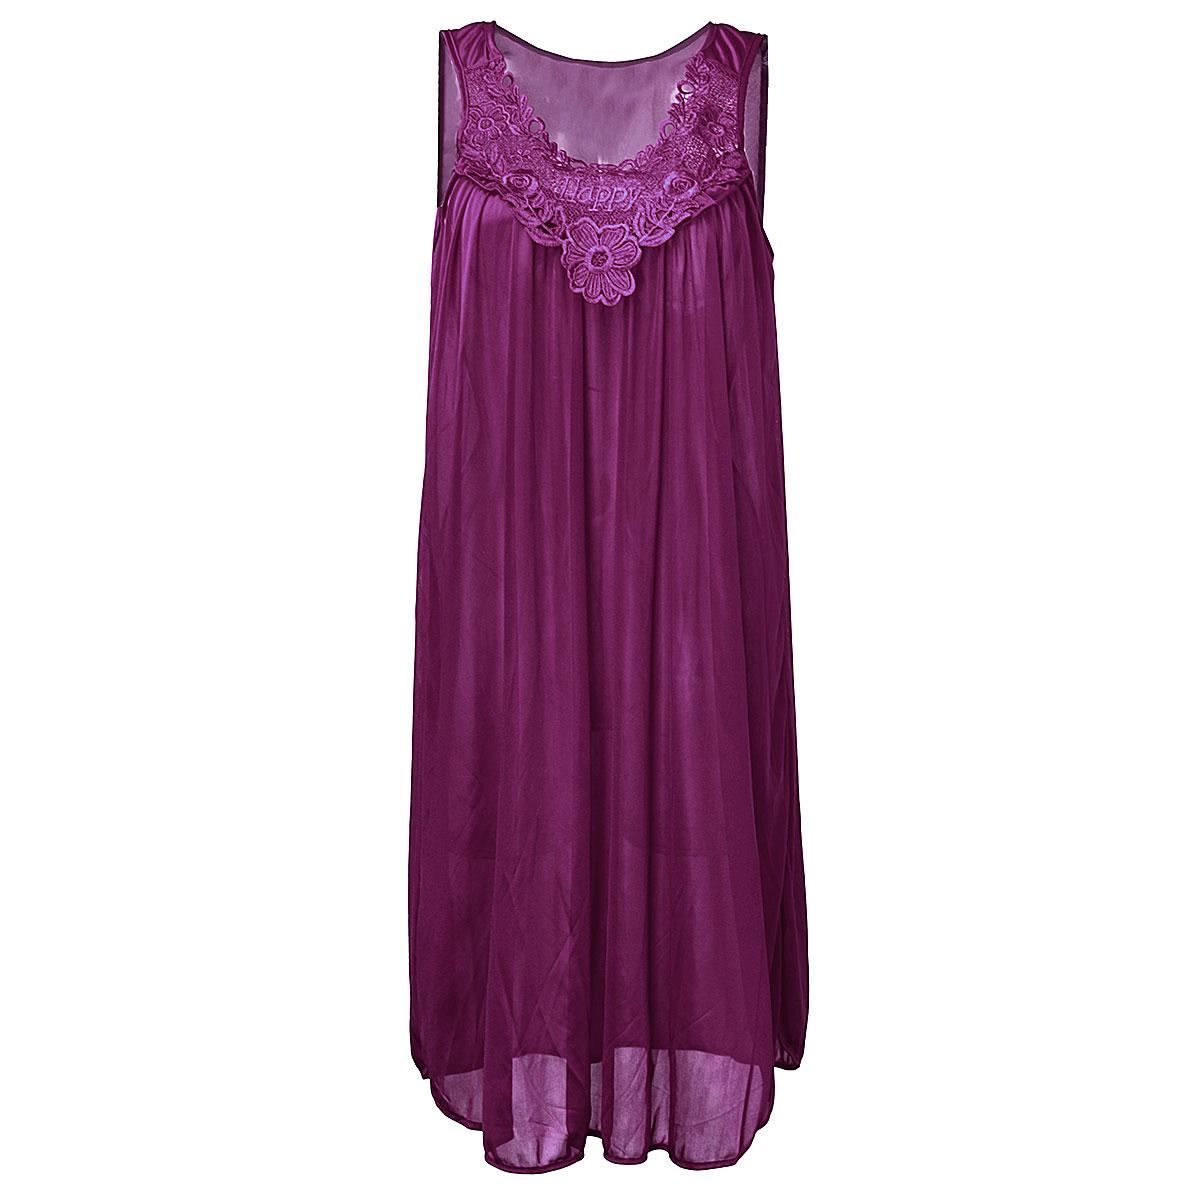 2016 Fashion Women Ladies Sexy Lace Long Peignoir Sleepwear Robes Soft And Silk-like Comfortable To Touch And Wear 8 Colors